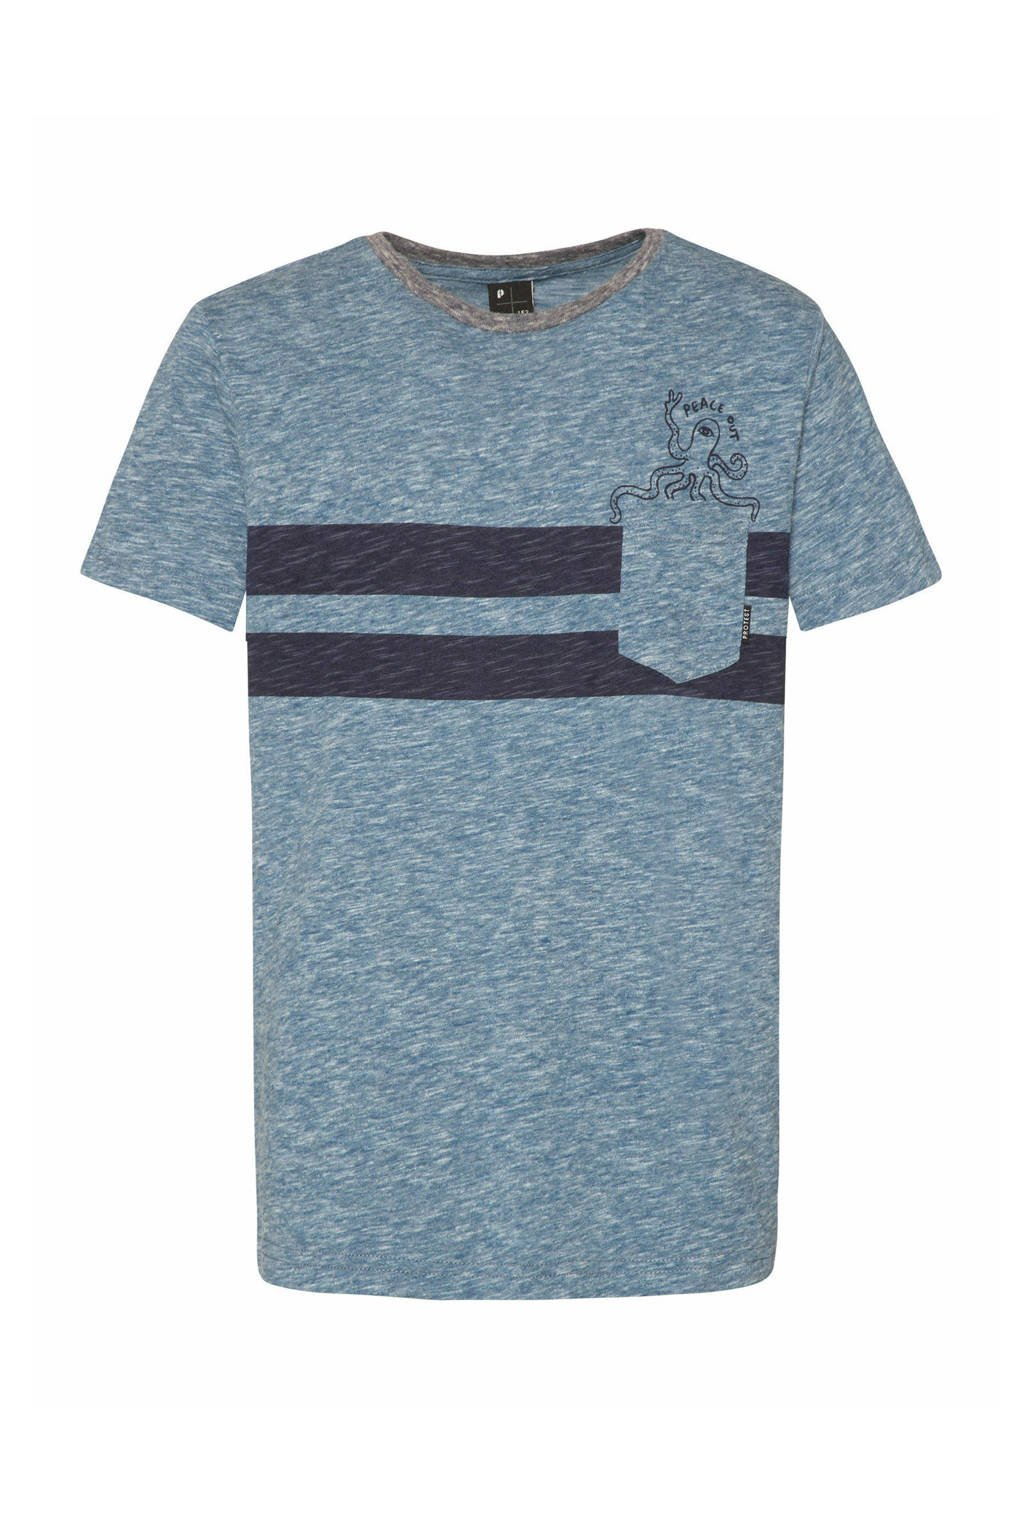 Protest T-shirt Globe blauw, Airforces